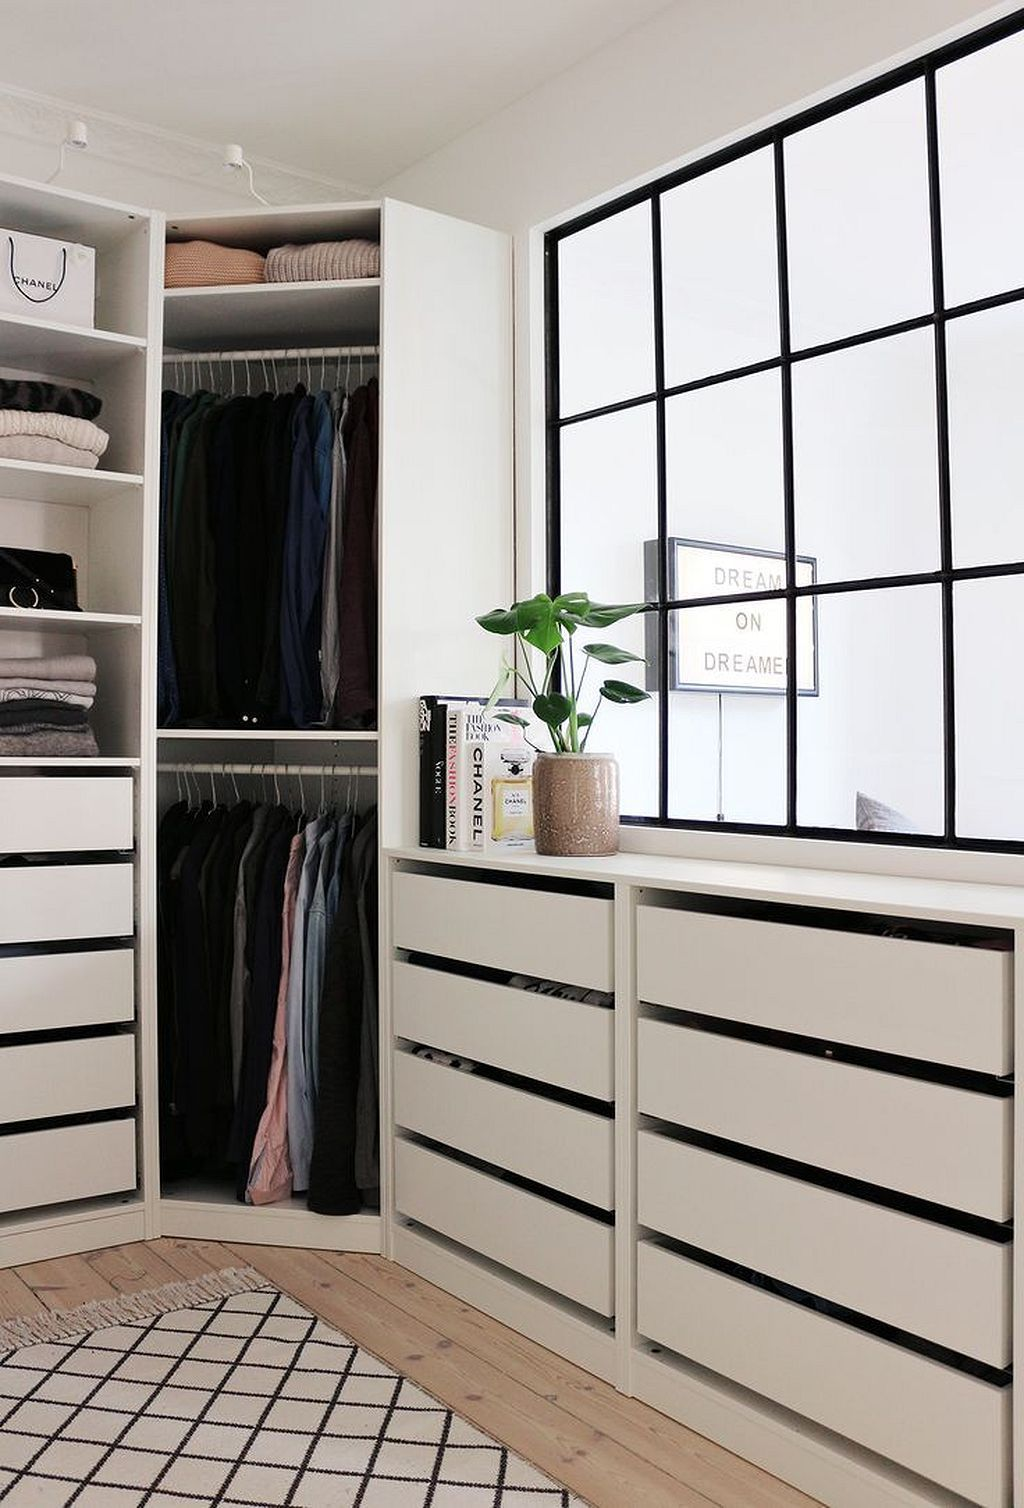 Ikea Selbst Planen Create More Space In Your Homes With Ikea Pax Closet | Begehbarer Kleiderschrank, Begehbarer Kleiderschrank Selber Bauen, Ikea Kleiderschrank